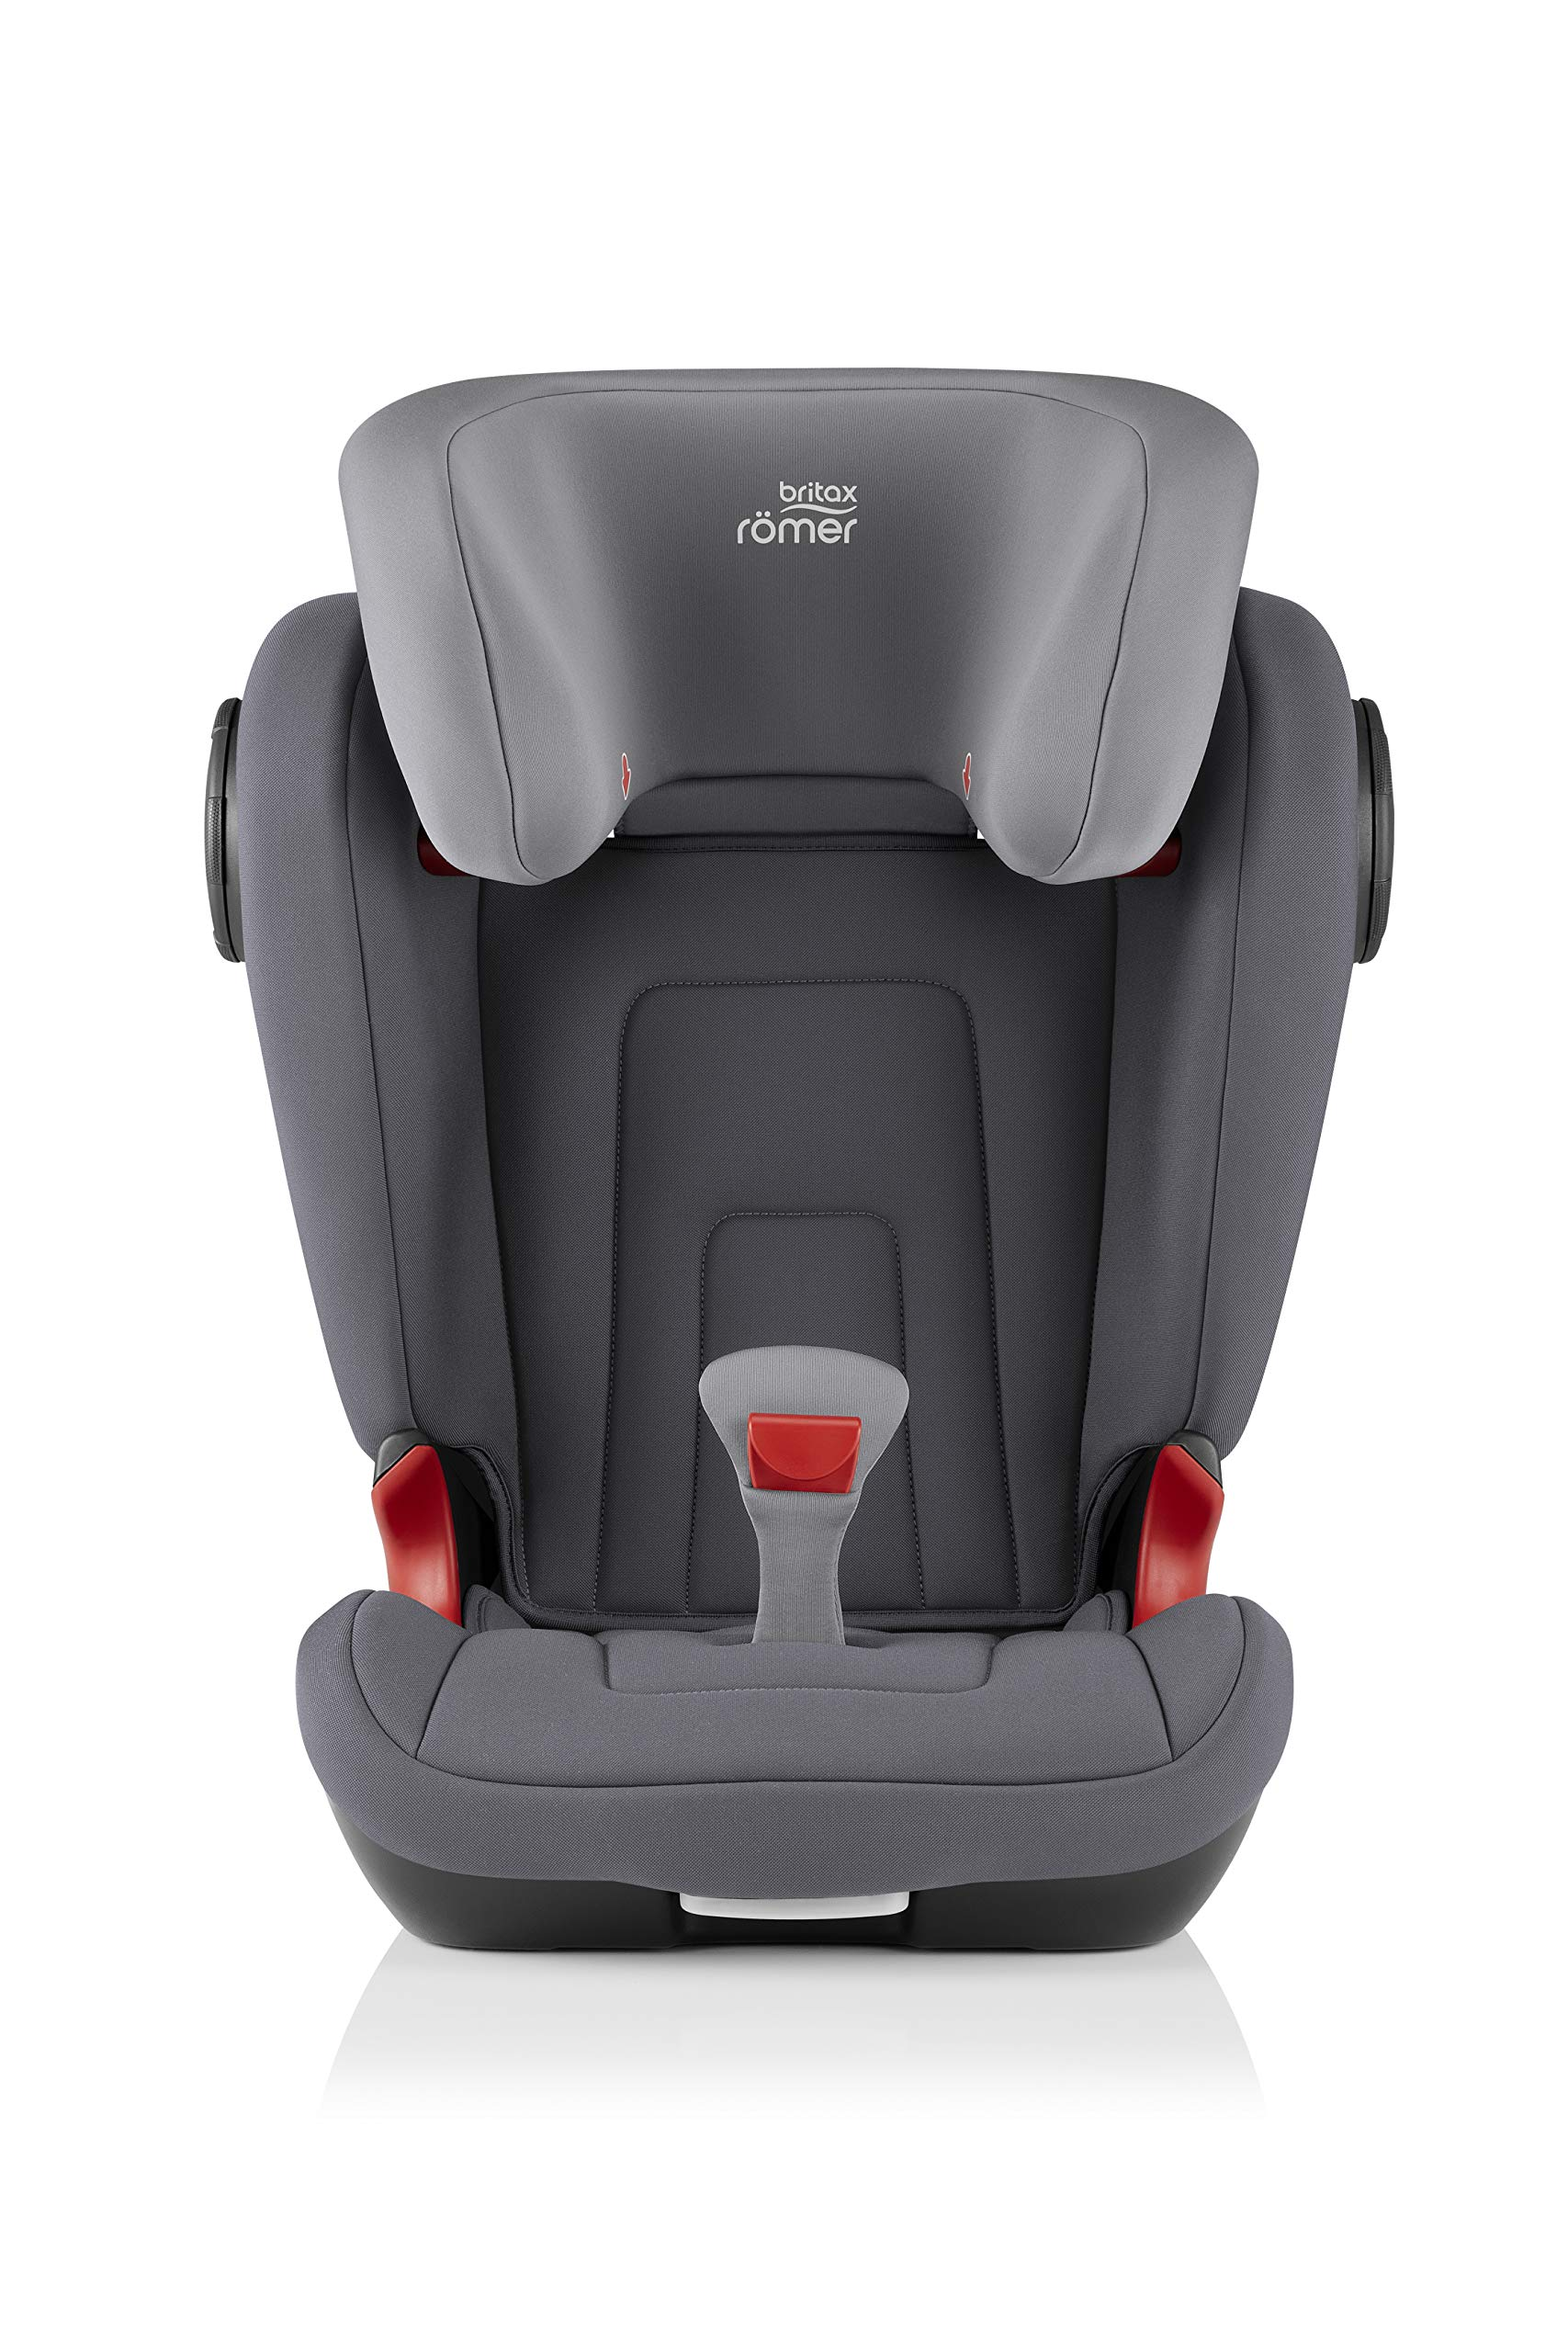 Britax Römer KIDFIX² S Group 2-3 (15-36kg) Car Seat - Storm Grey  Advanced side impact protection - sict offers superior protection to your child in the event of a side collision. reducing impact forces by minimising the distance between the car and the car seat. Secure guard - helps to protect your child's delicate abdominal area by adding an extra - a 4th - contact point to the 3-point seat belt. High back booster - protects your child in 3 ways: provides head to hip protection; belt guides provide correct positioning of the seat belt and the padded headrest provides safety and comfort. 2